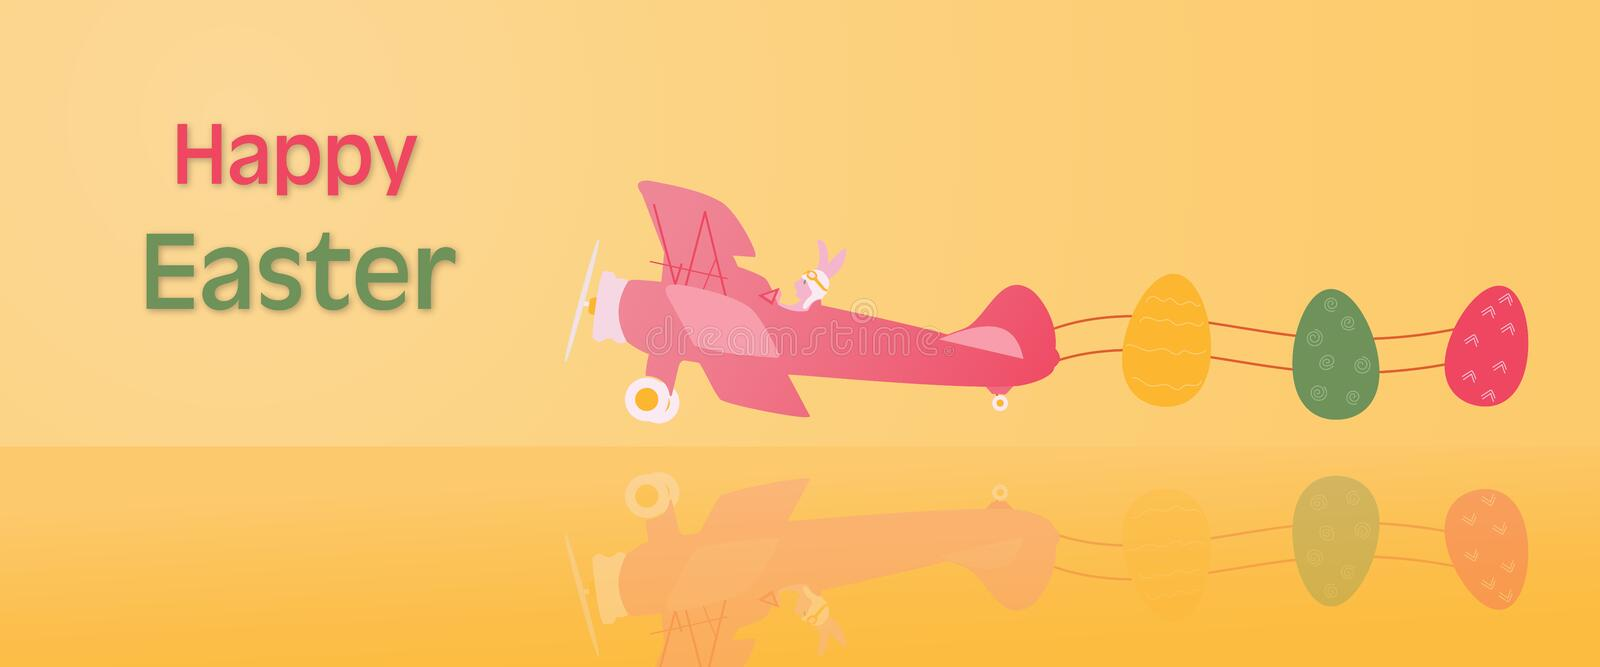 Happy Easter - Airplane royalty free illustration